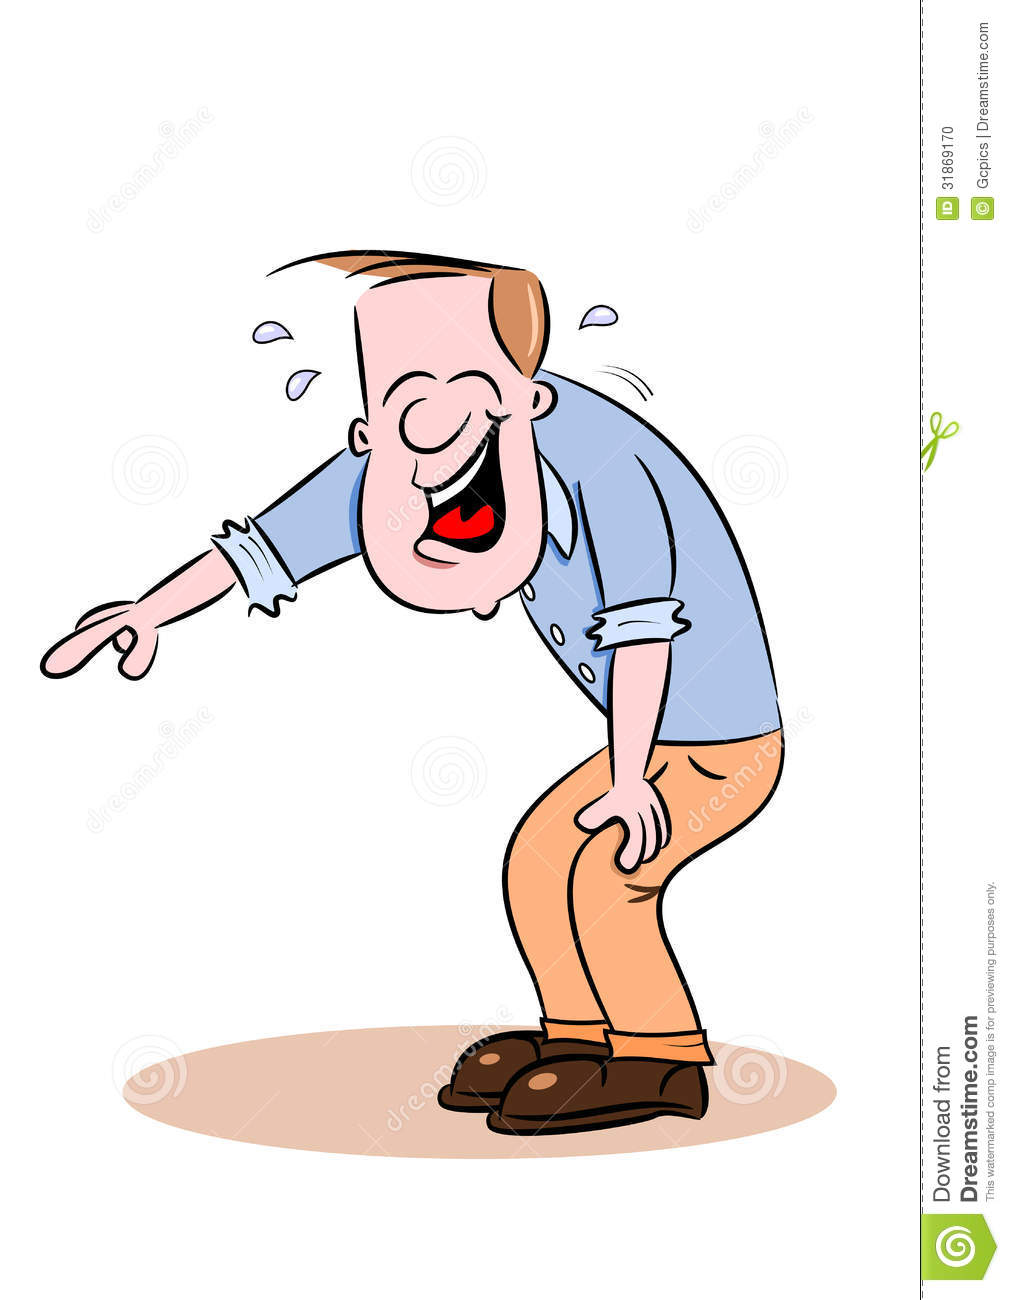 man laughing clipart - photo #47